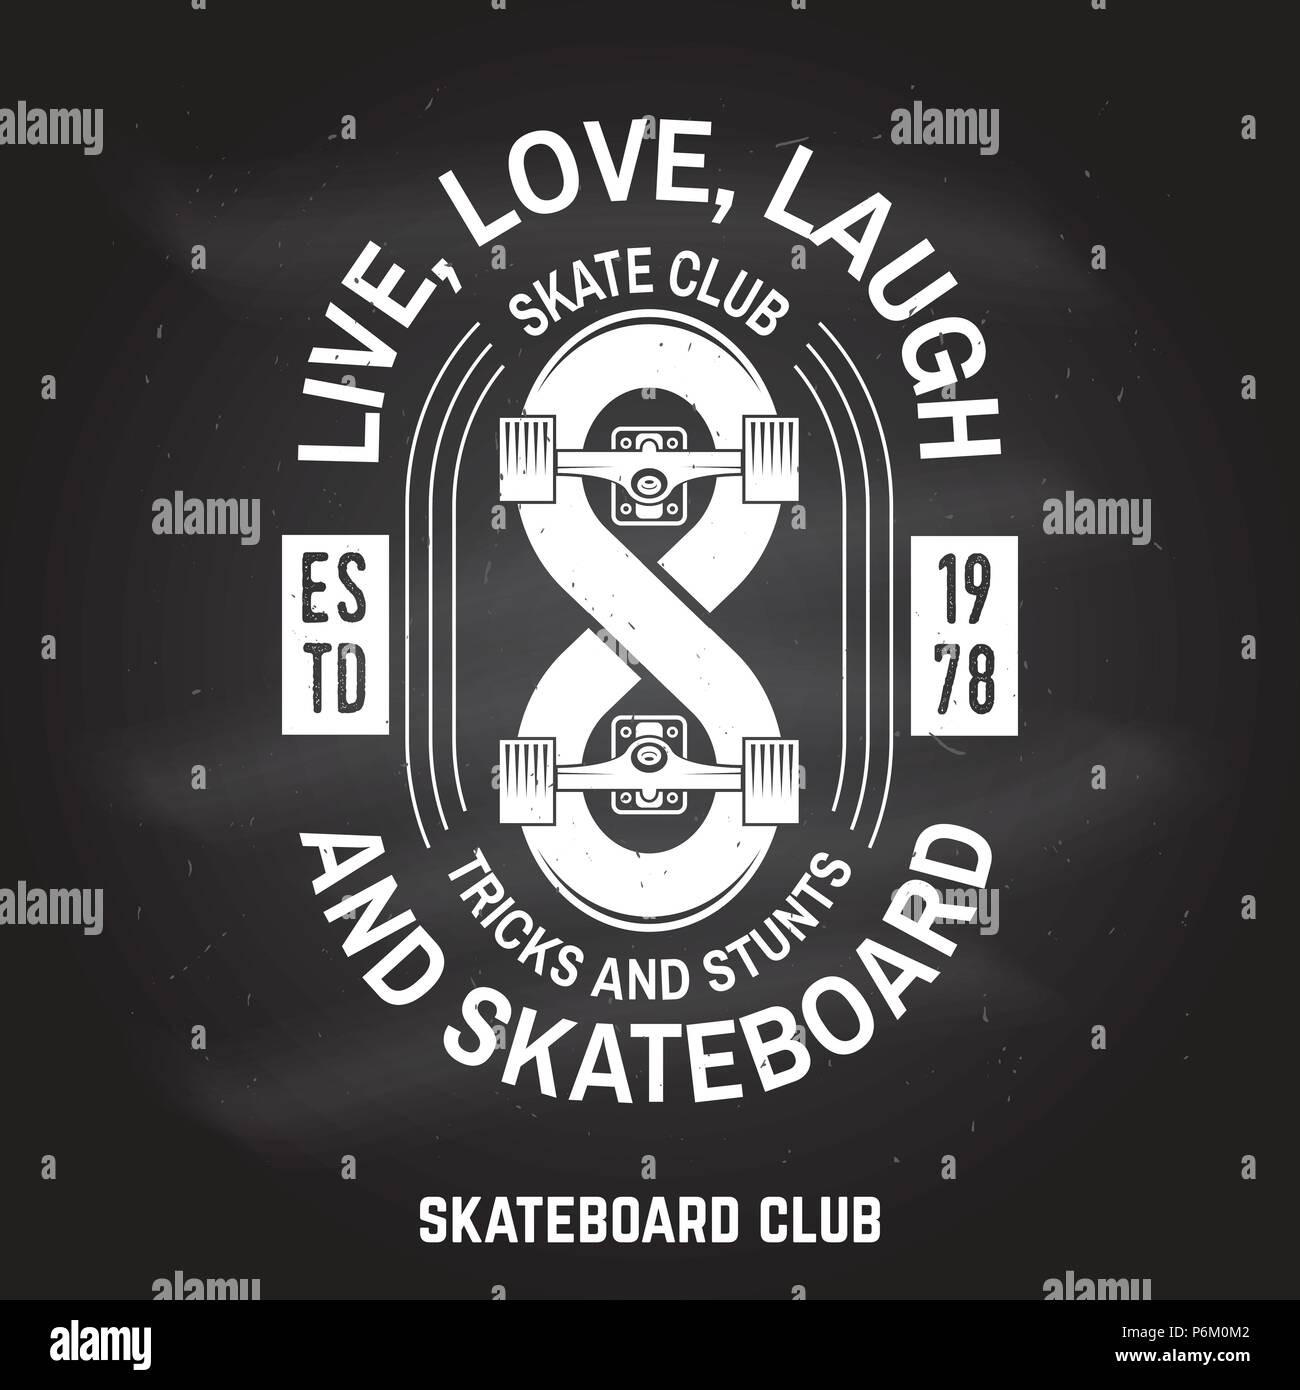 Skateboard club sign on the chalkboard. Vector illustration. Extreme sport. For skate club emblems, signs and t-shirt design. Retro typography design with infinity sign and text-Llive, love, laugh and skateboard - Stock Vector